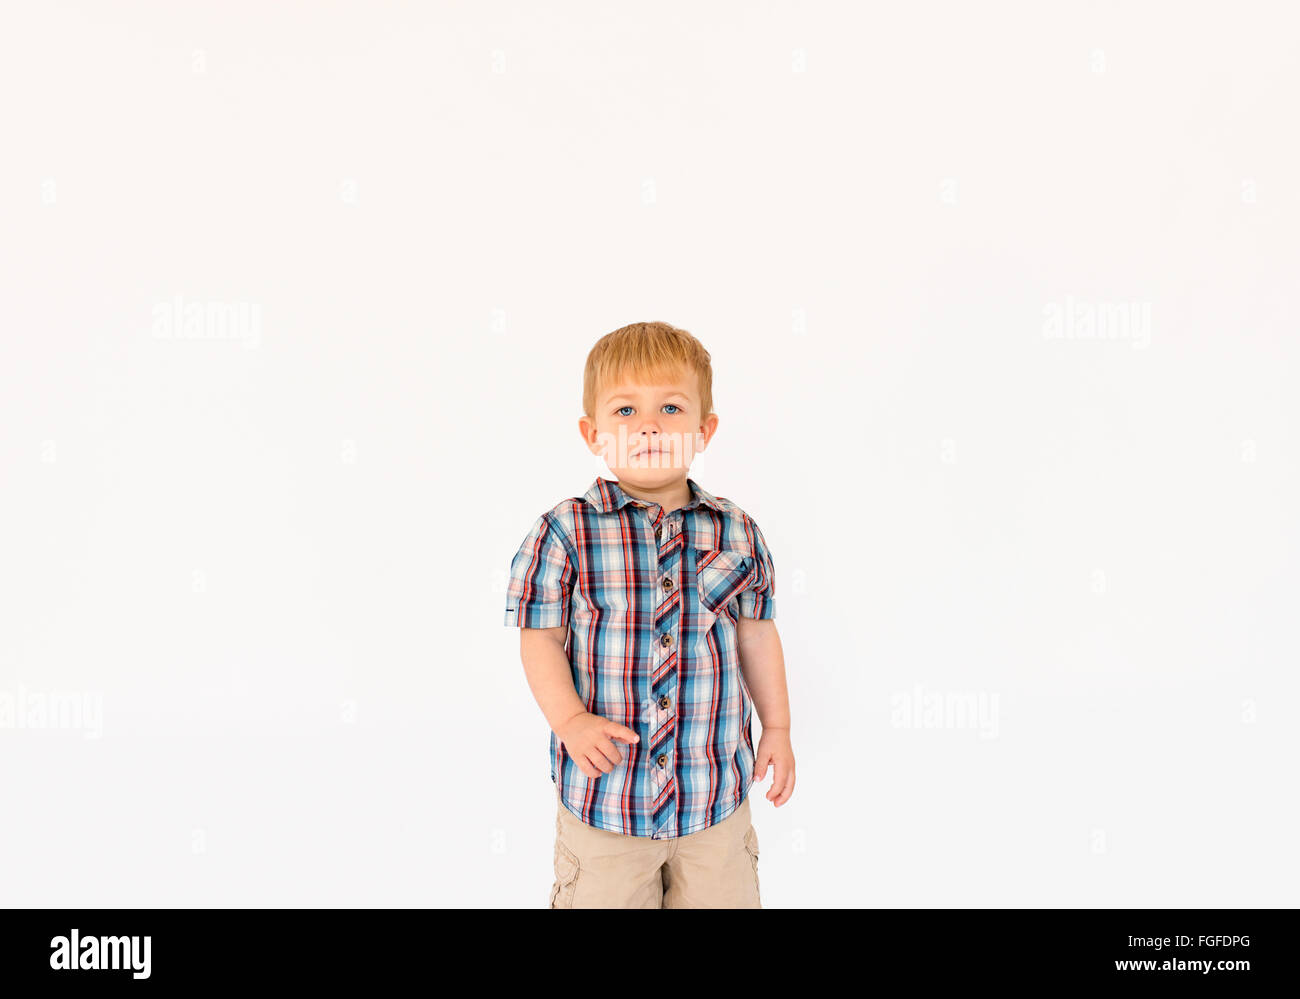 Young boy with blonde hair standing against a white background pointing his finger - Stock Image